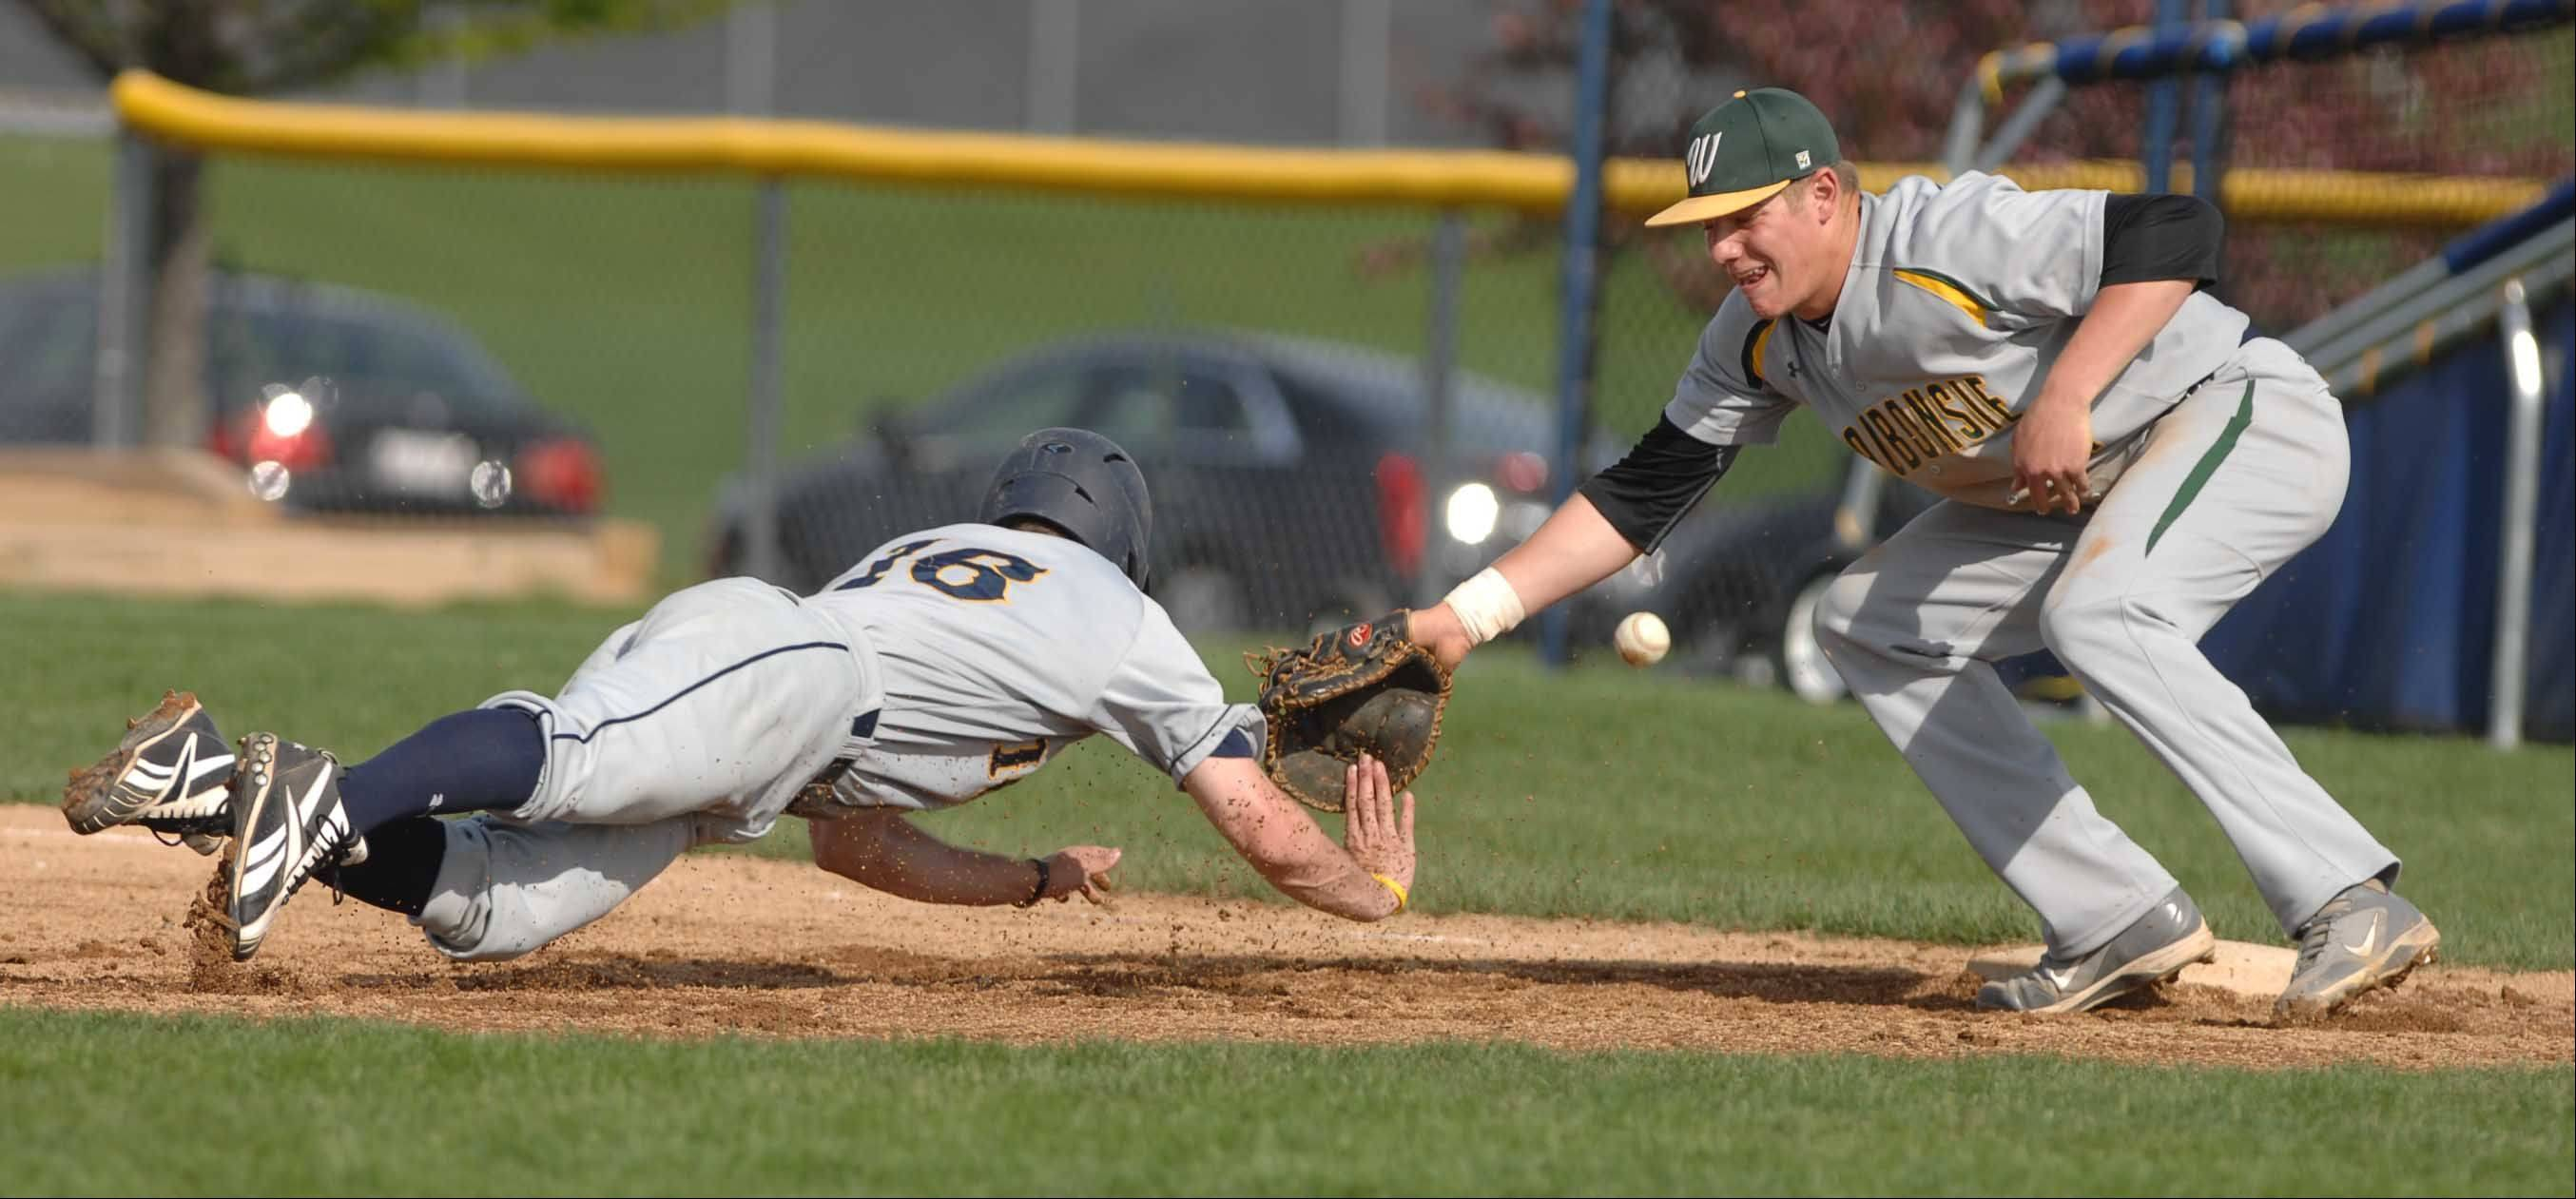 Jeff Evak of ,Neuqua,left, makes it back to first while Troy Fumagalli of Waubnsie misses the tag and ball during the Waubonsie Valley at Neuqua Valley baseball game Tuesday.